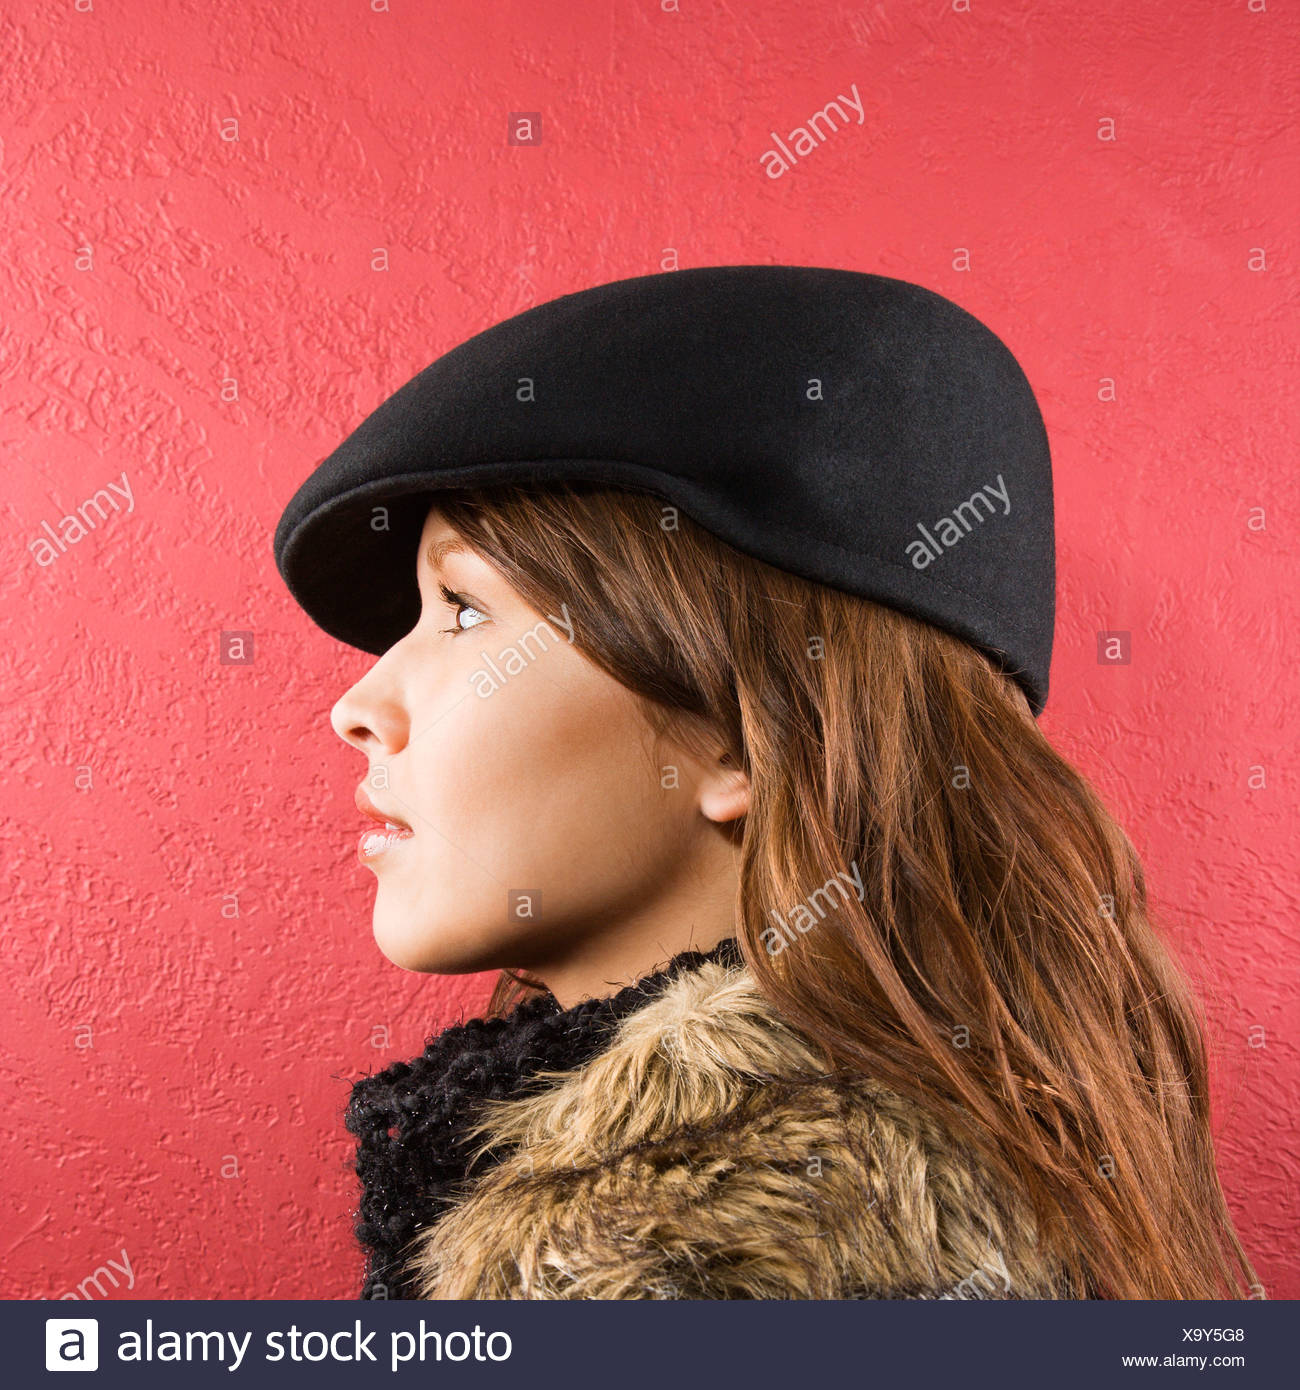 02dcde3c49d5b Profile of young brunette adult Caucasian woman wearing flat hat ...